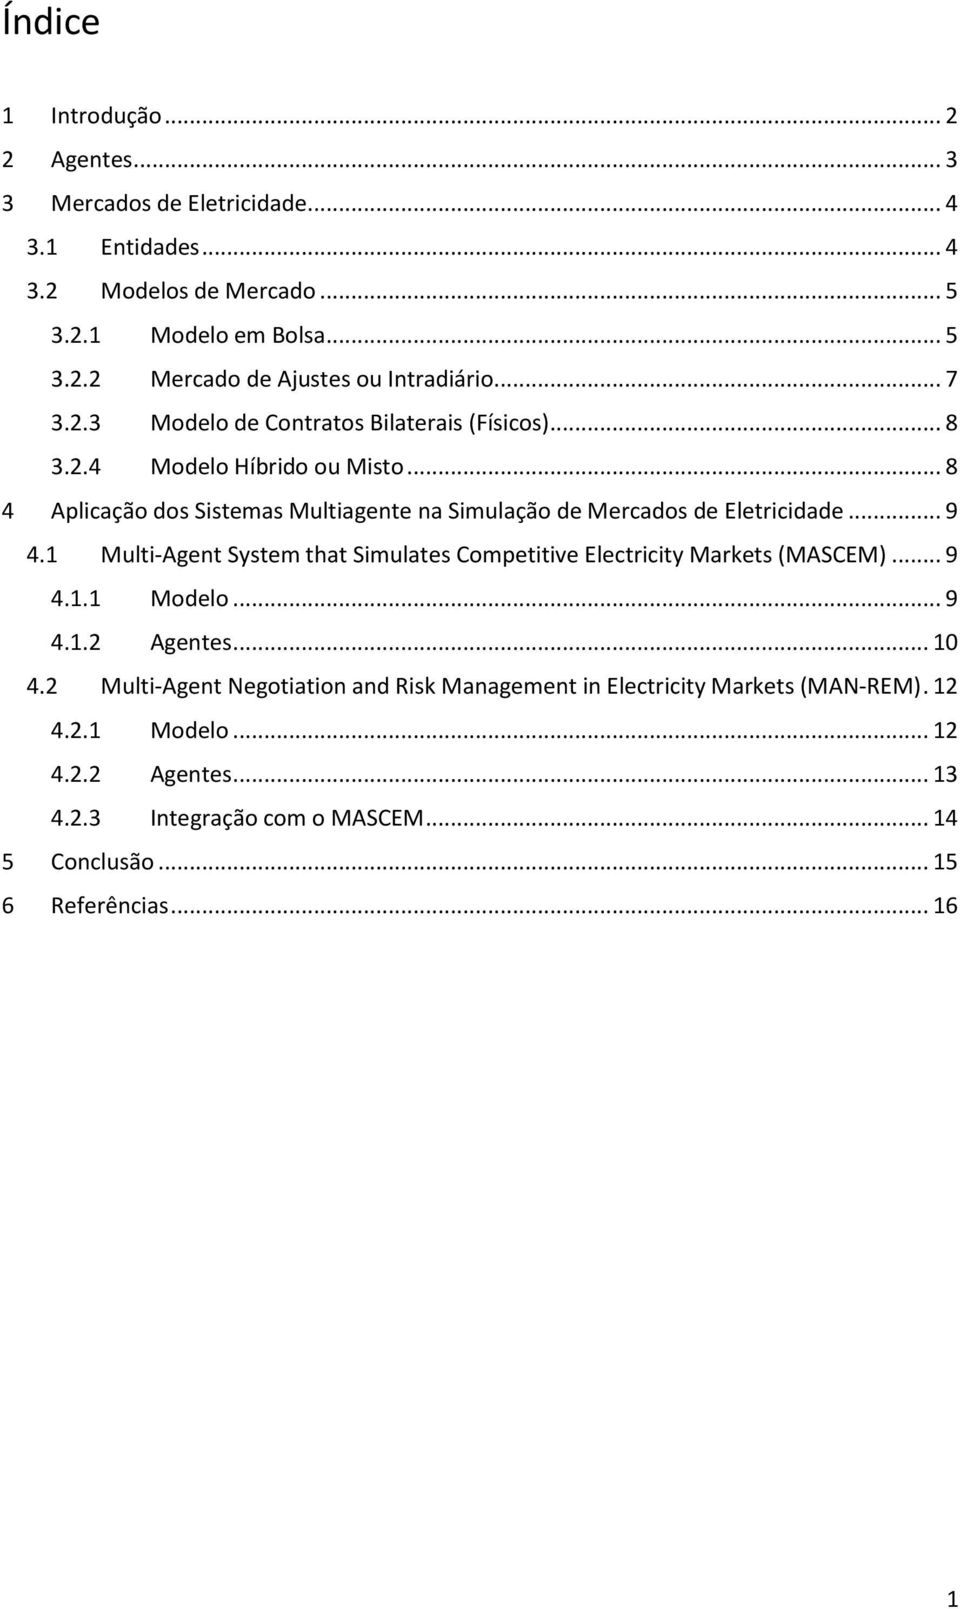 .. 9 4.1 Multi-Agent System that Simulates Competitive Electricity Markets (MASCEM)... 9 4.1.1 Modelo... 9 4.1.2 Agentes... 10 4.